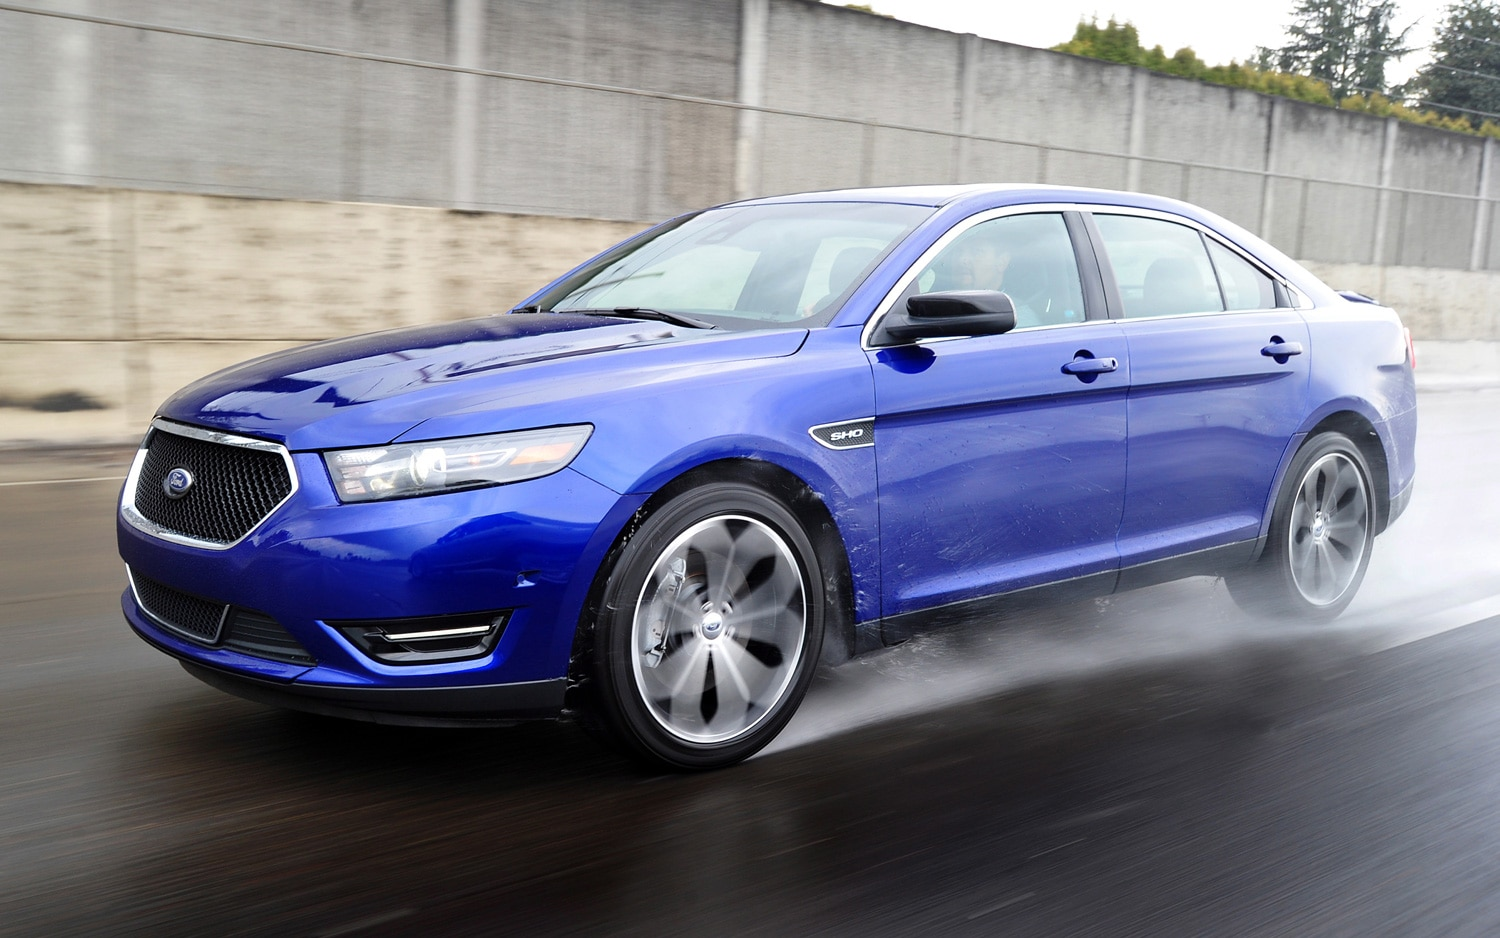 2013 Ford Taurus SHO Front Three Quarters In Motion1